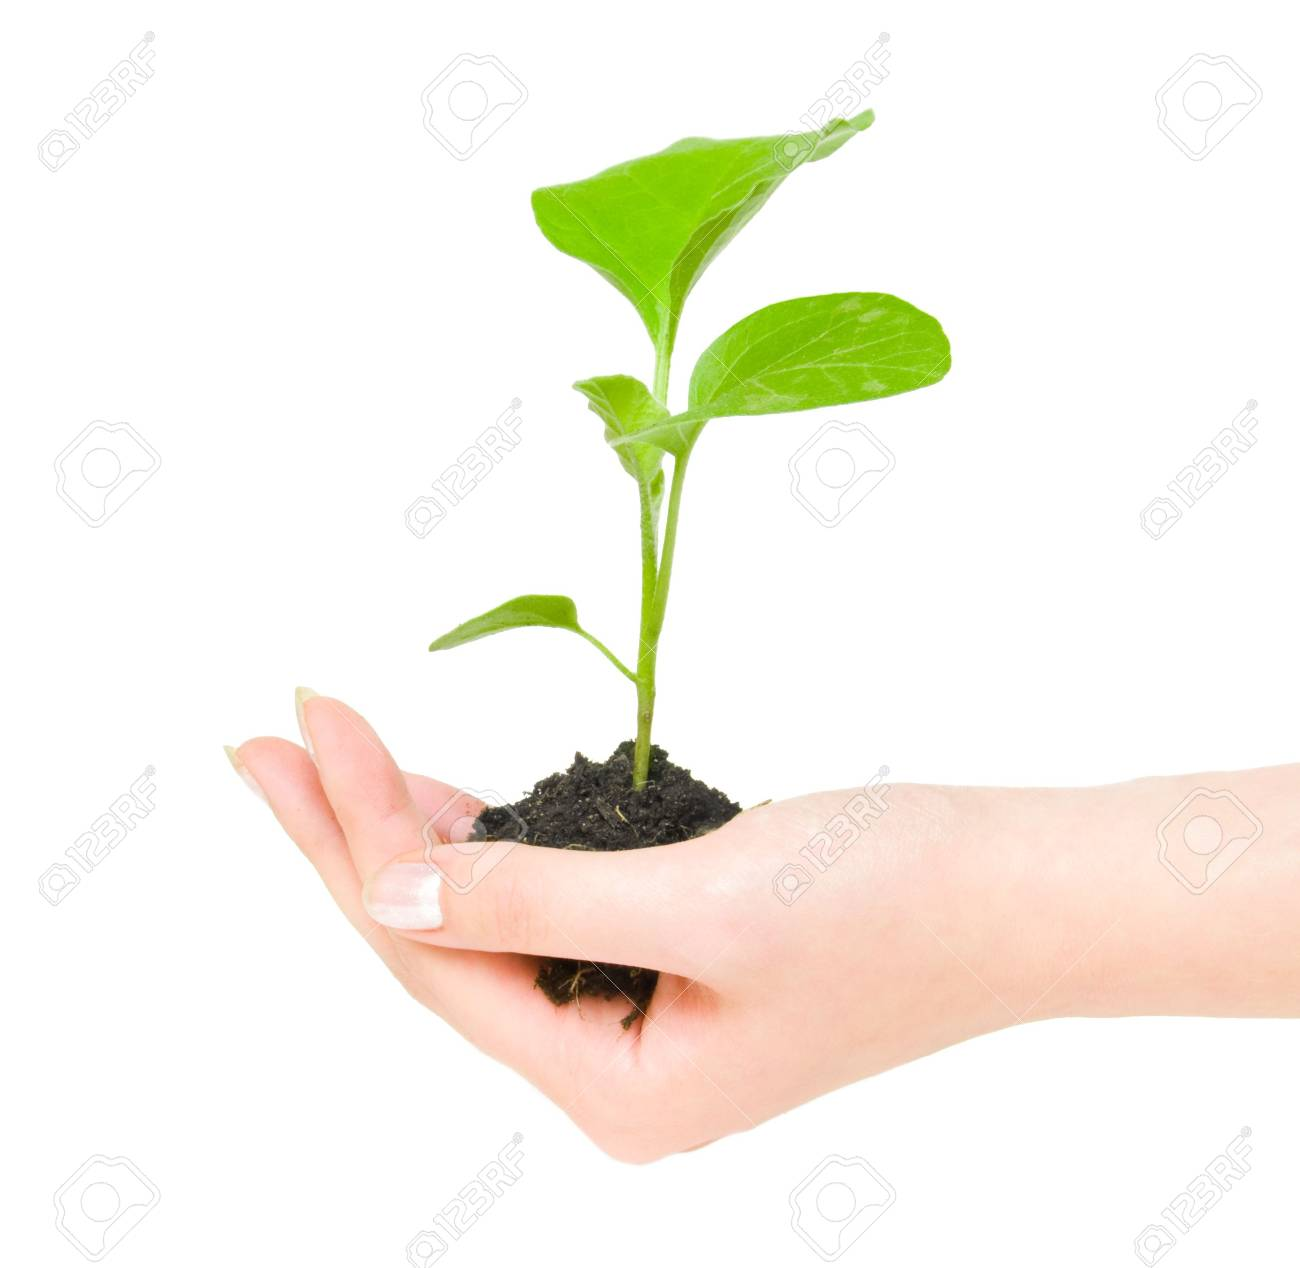 Growing green plant in a hand isolated on white background Stock Photo - 3743033